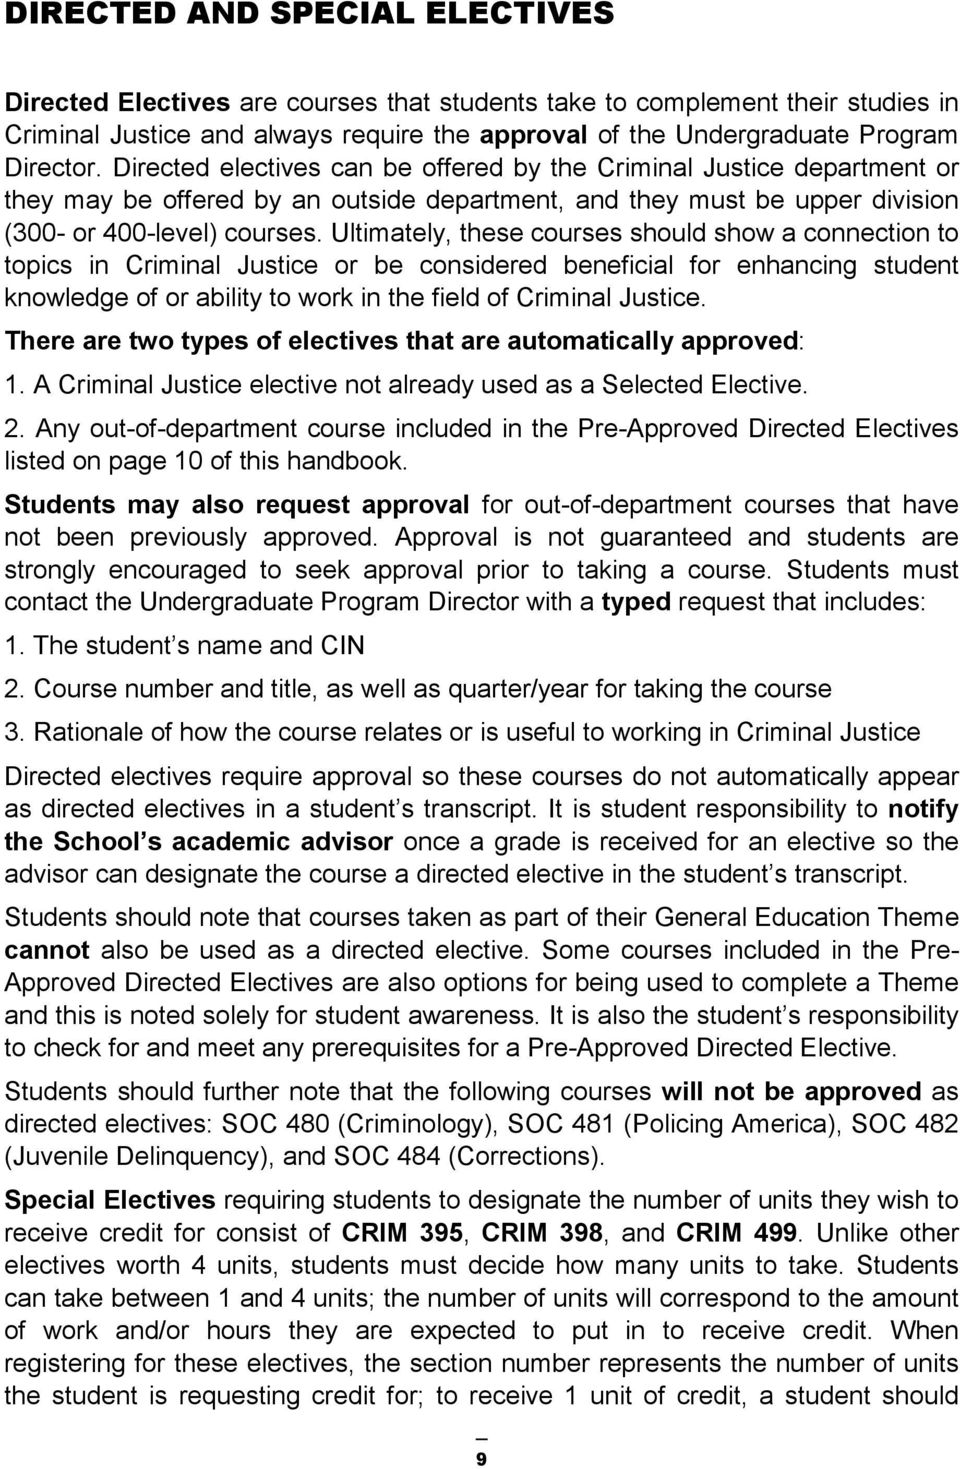 Ultimately, these courses should show a connection to topics in Criminal Justice or be considered beneficial for enhancing student knowledge of or ability to work in the field of Criminal Justice.